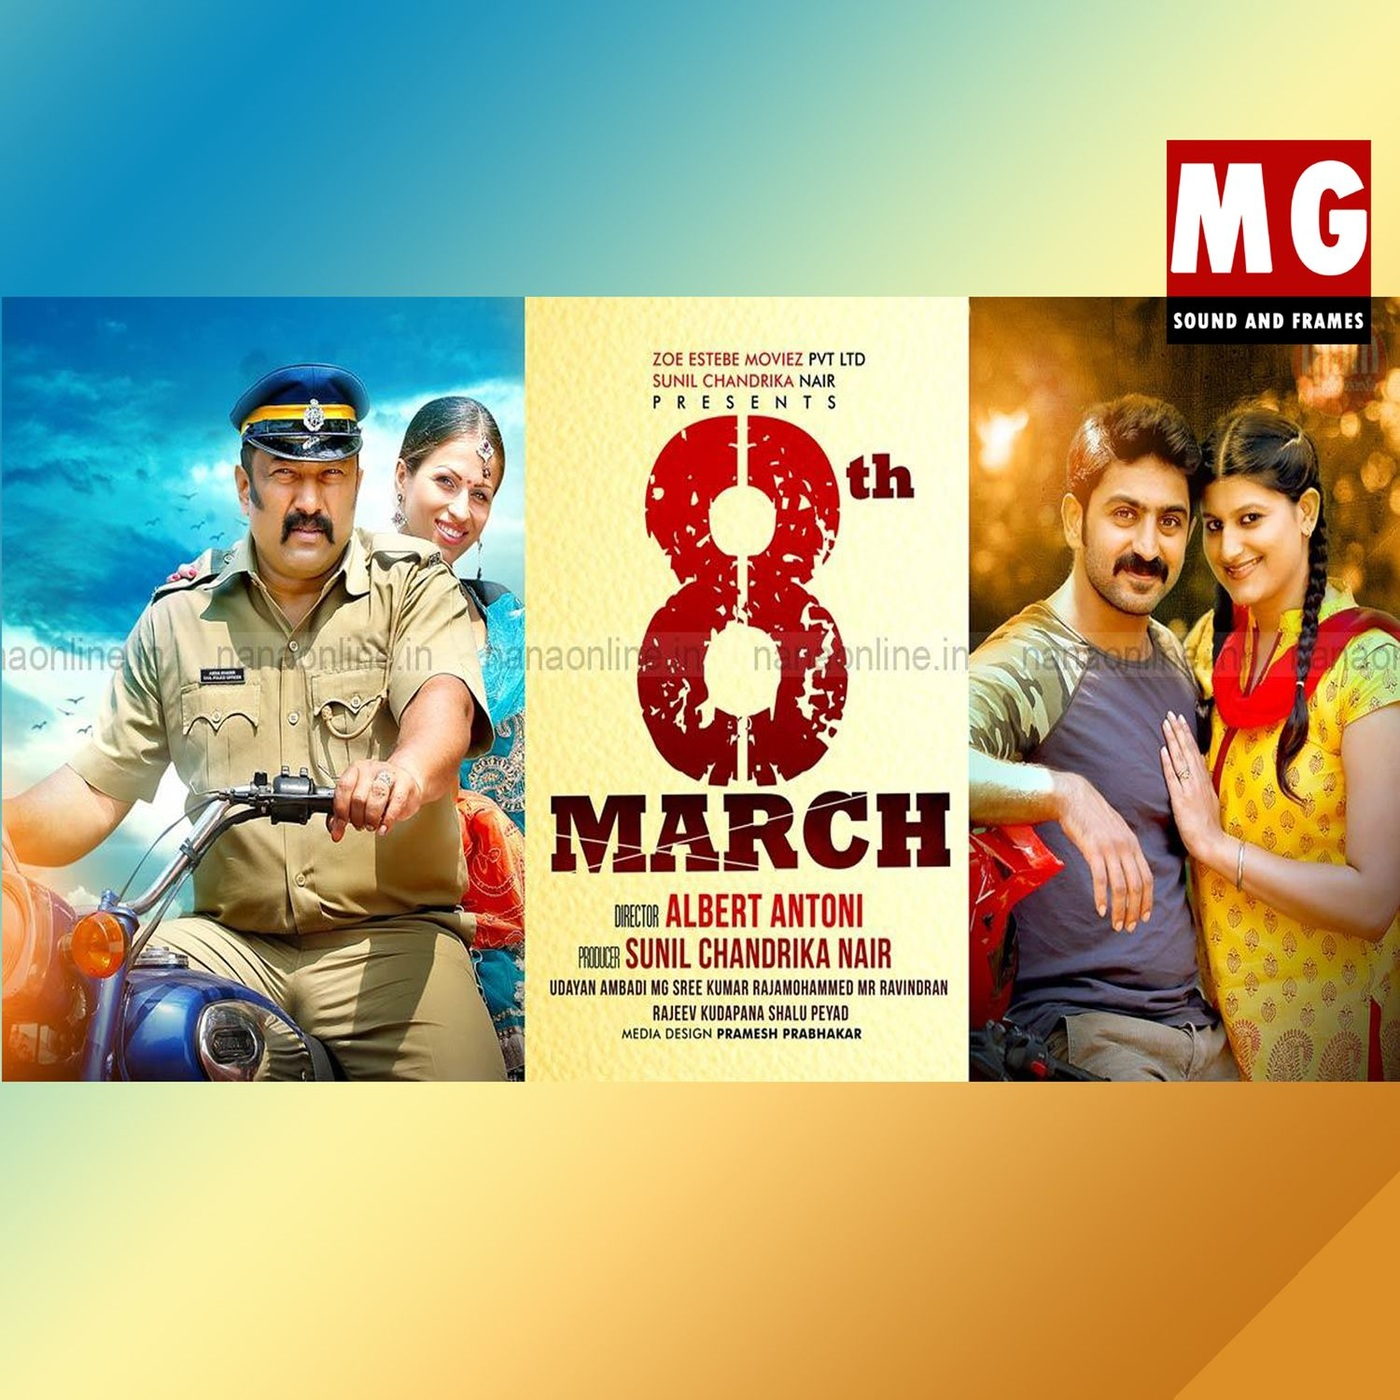 8th March (2015)